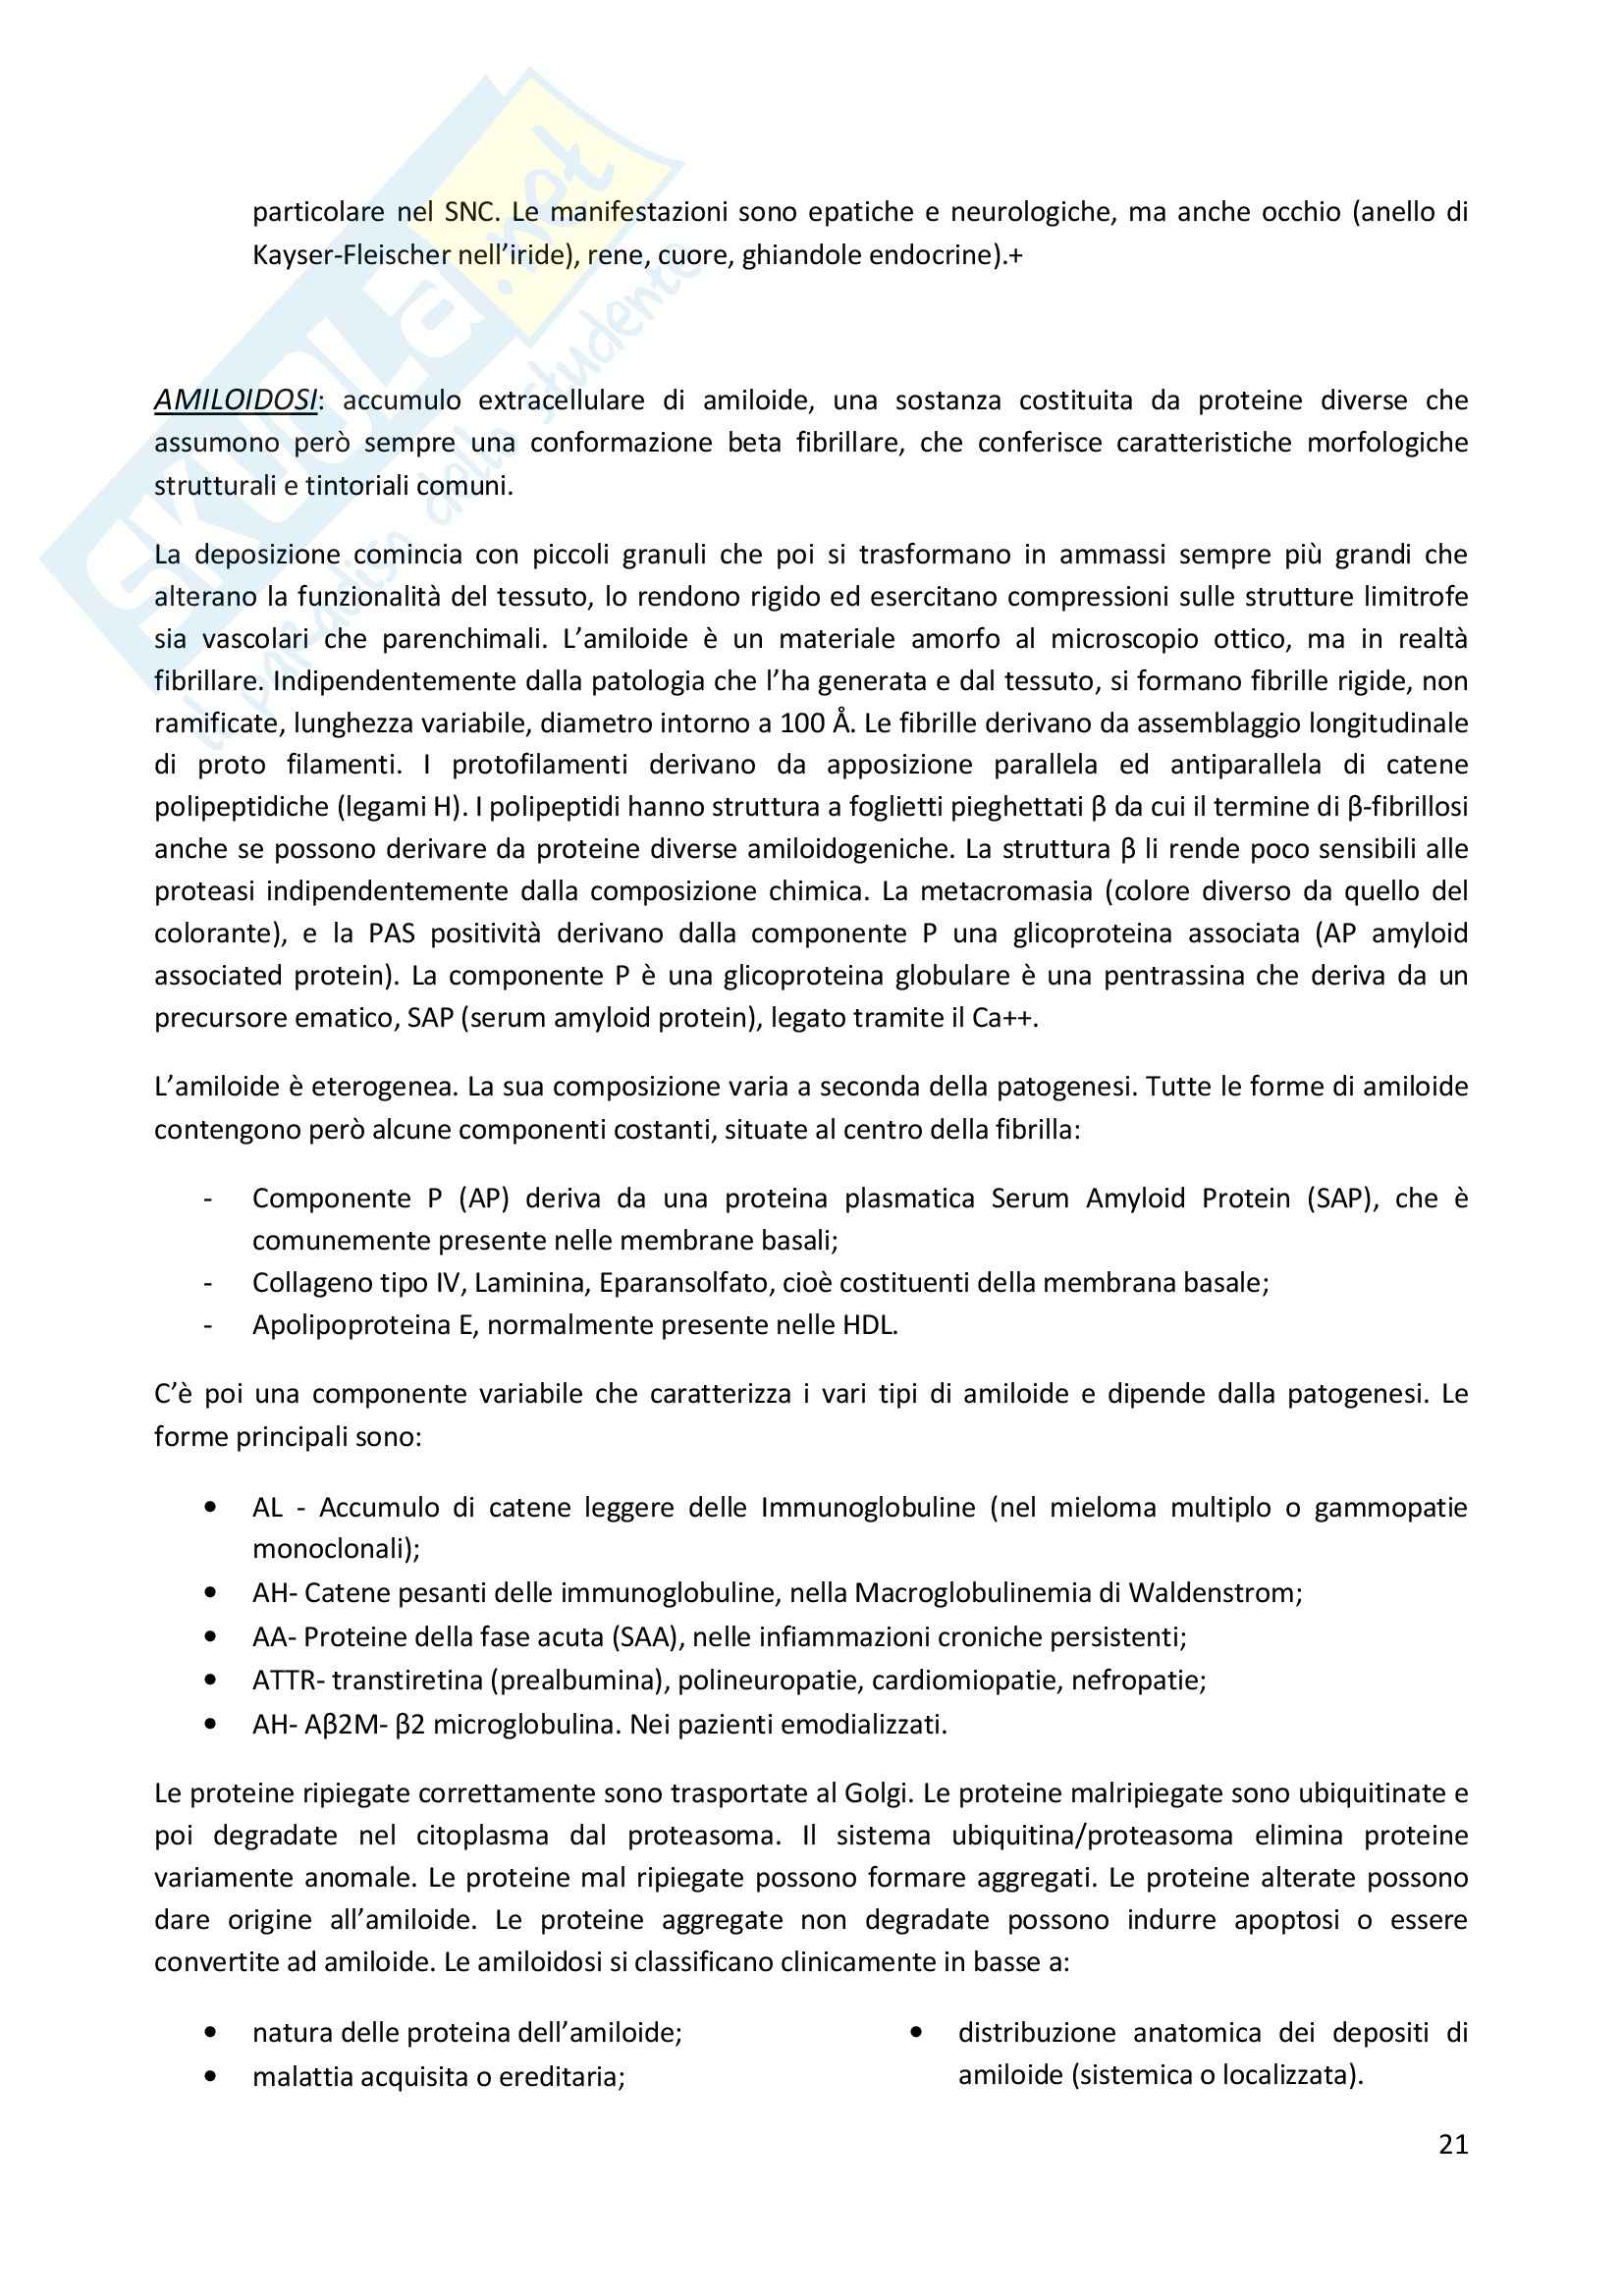 Patologia cellulare - Appunti Pag. 21